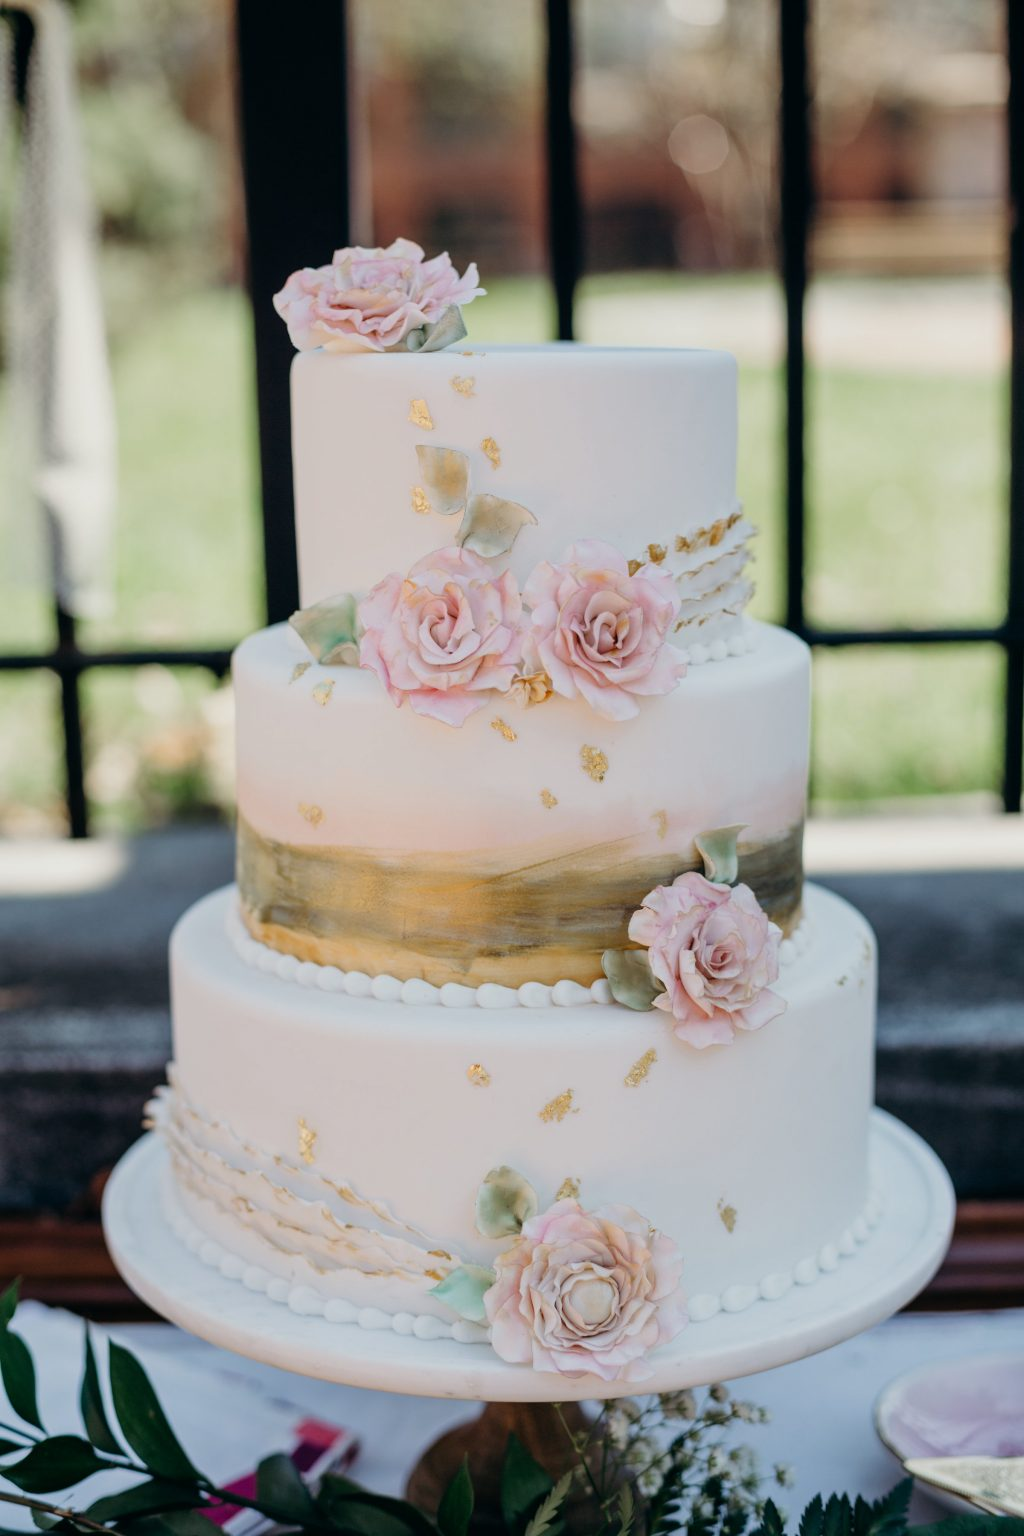 Romantic blush floral wedding cake | summer wedding inspiration shoot in downtown Syracuse featuring Bella Figura wedding invitations | Photos by Nicole Lagoe Photography